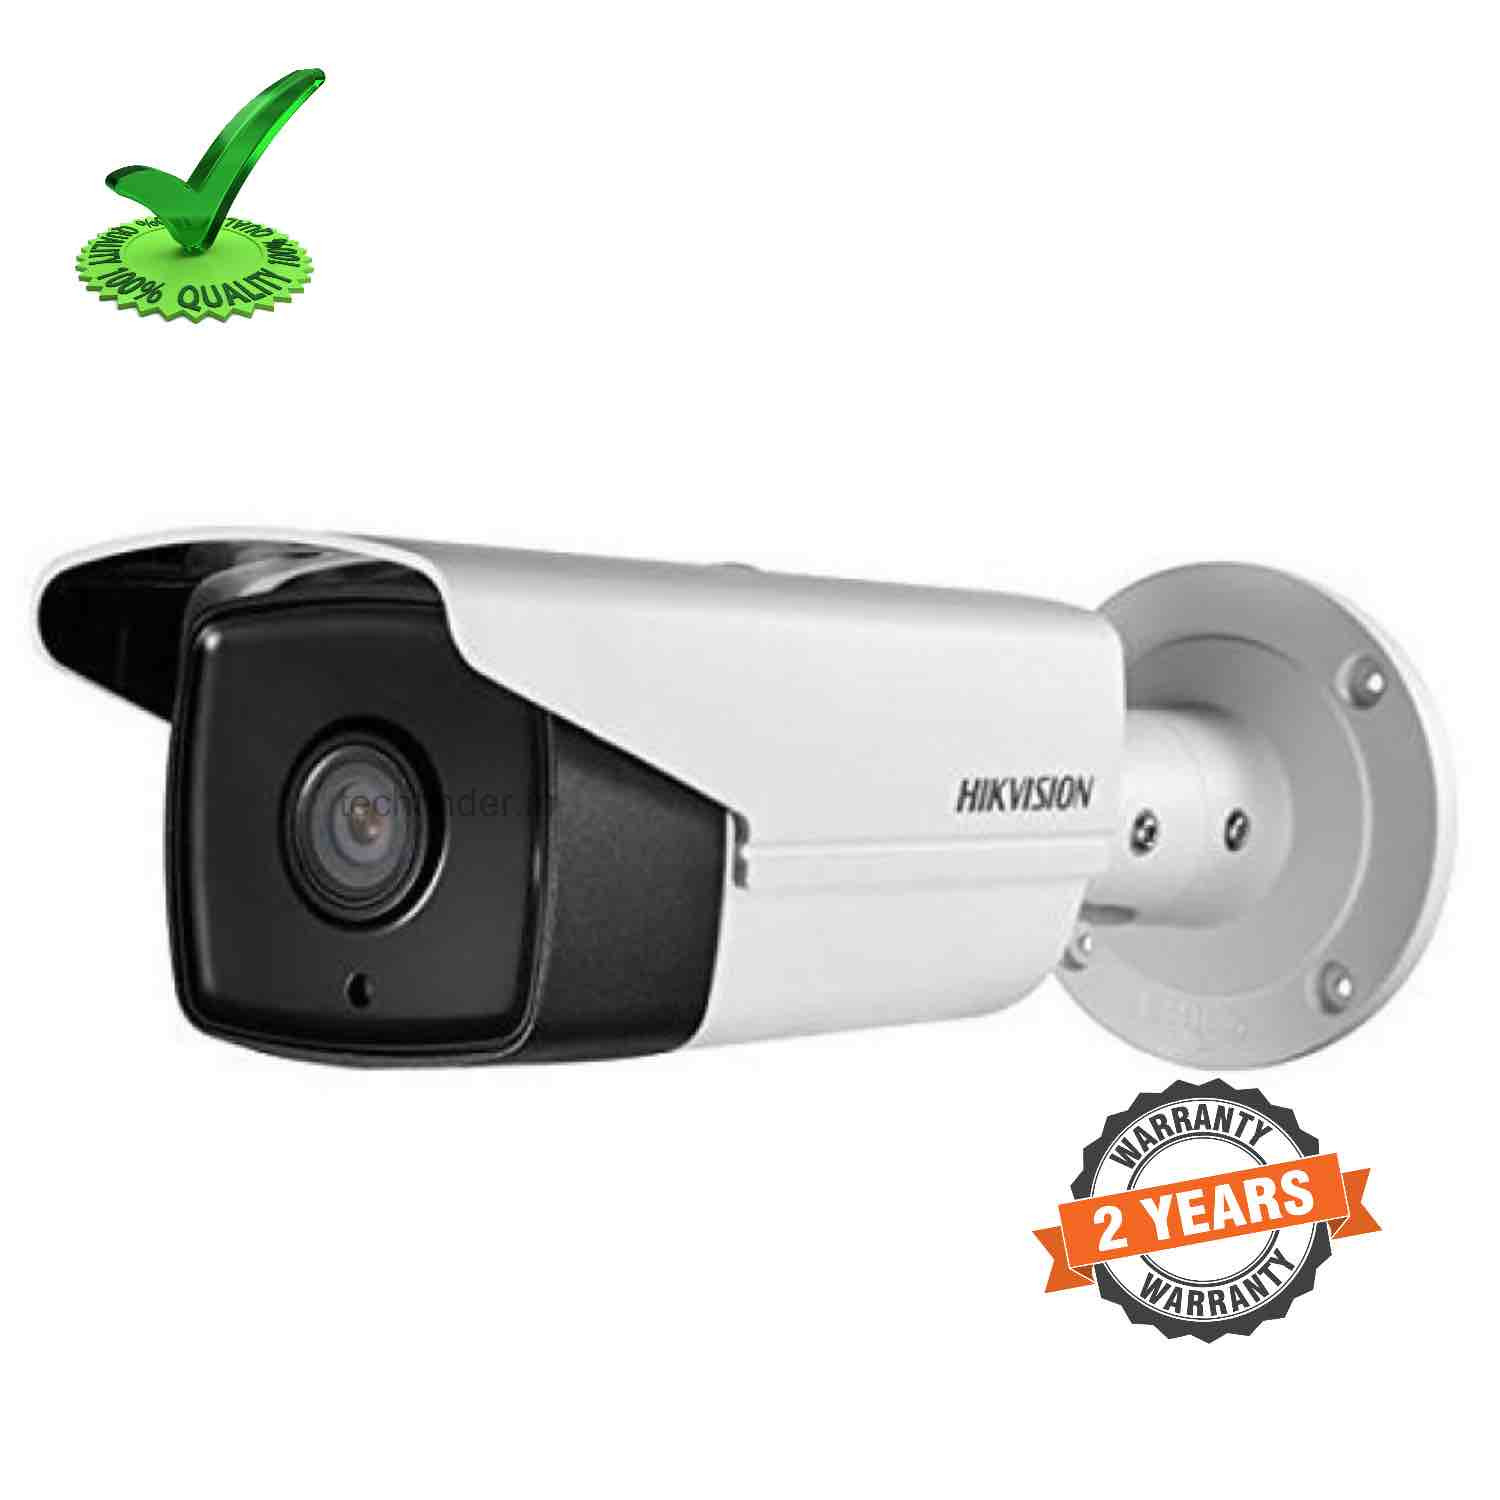 Hikvision DS-2CD1023G0E-I 2mp CMOS Ip Ir Bullet Camera